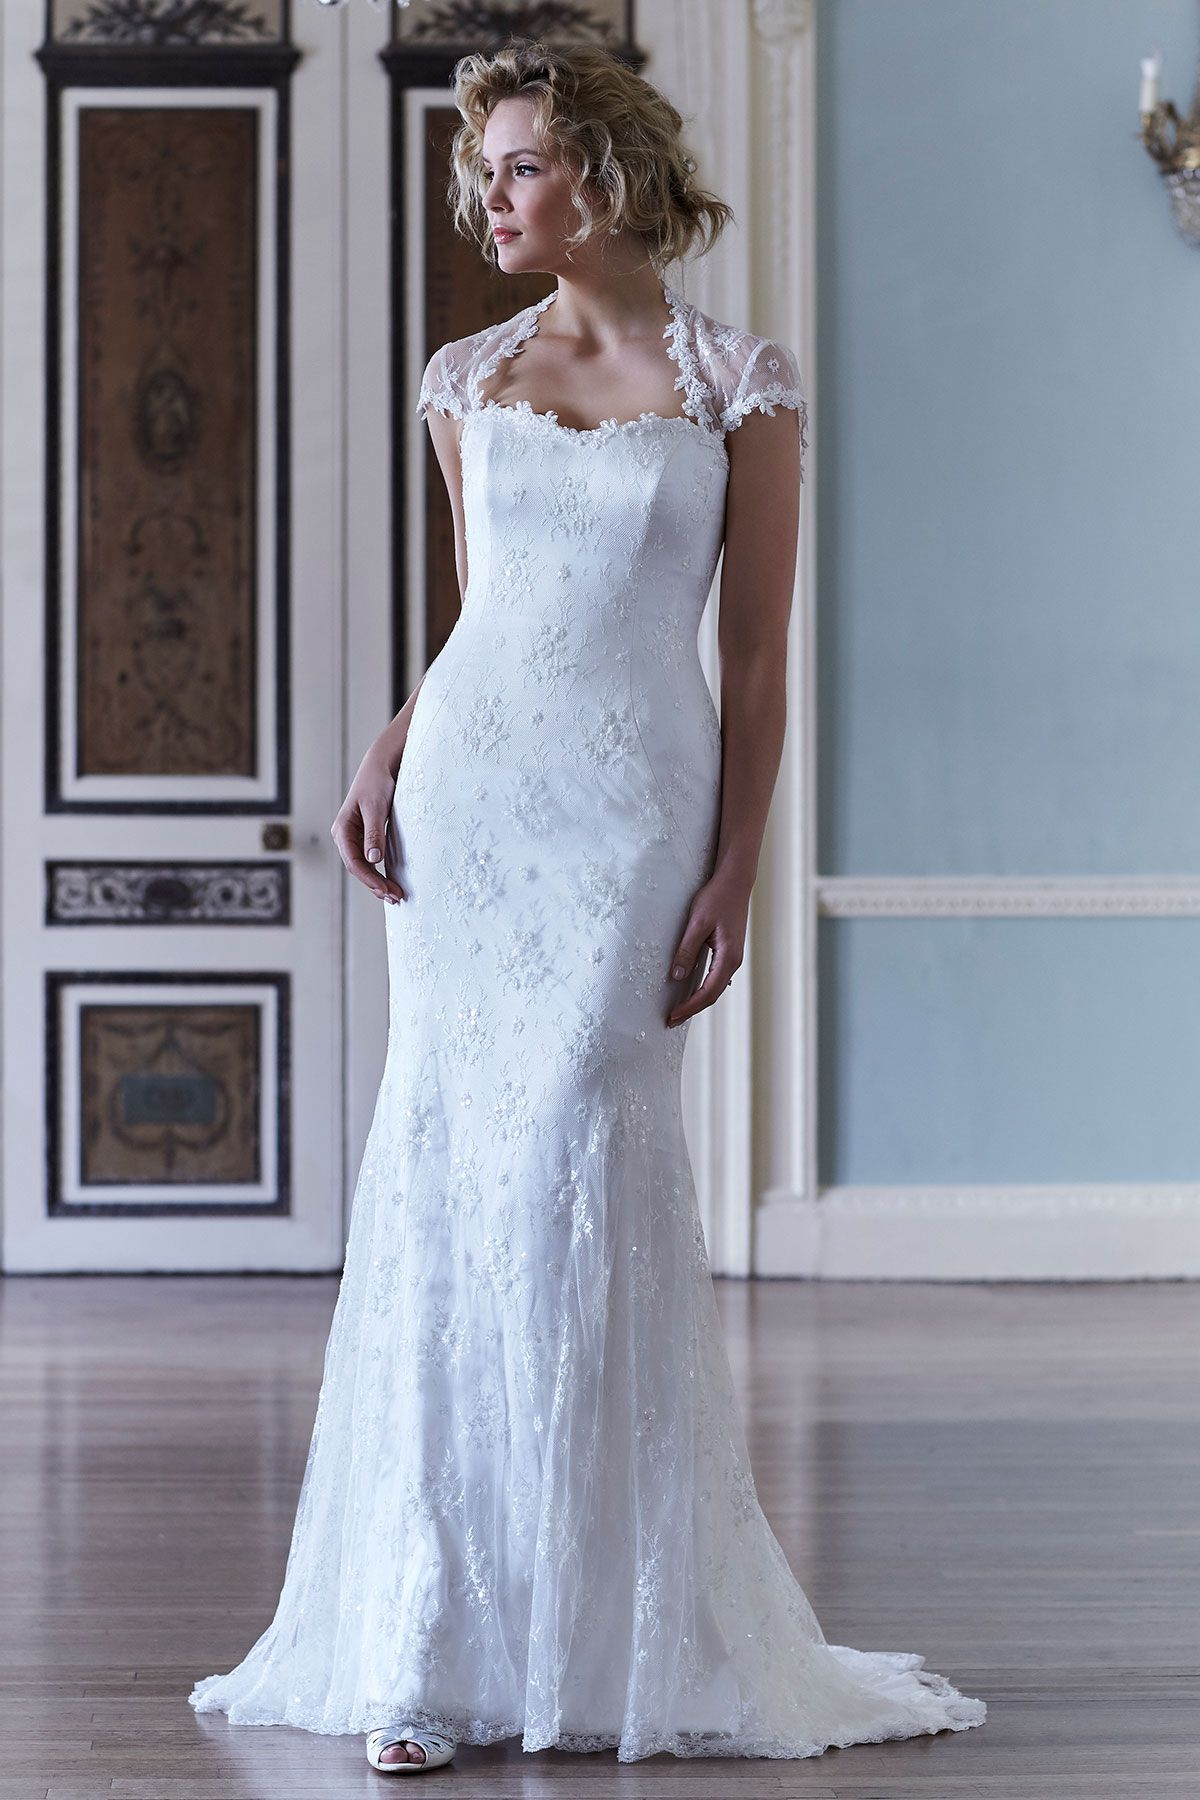 Sassi Holford Fishtail, Fit and Flare Wedding Dress